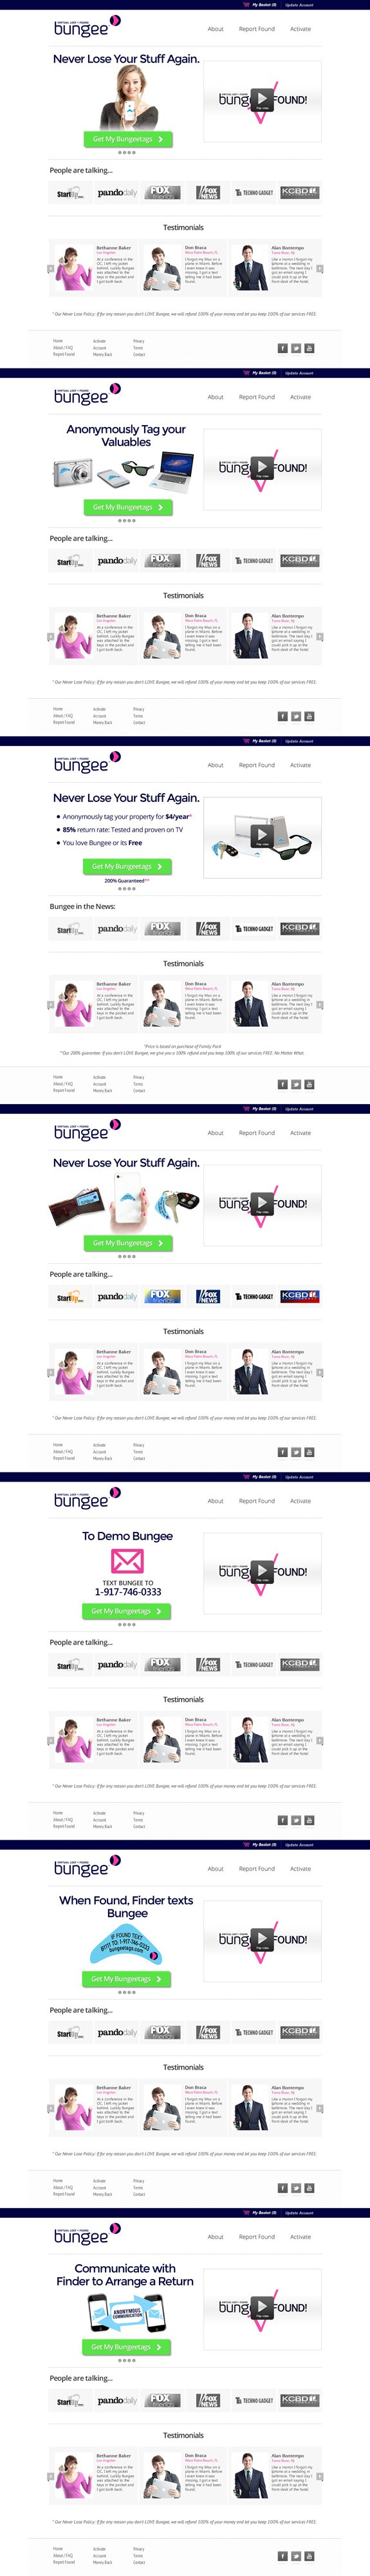 website design for Bungee Virtual Lost and Found (www.bungeetags.com)